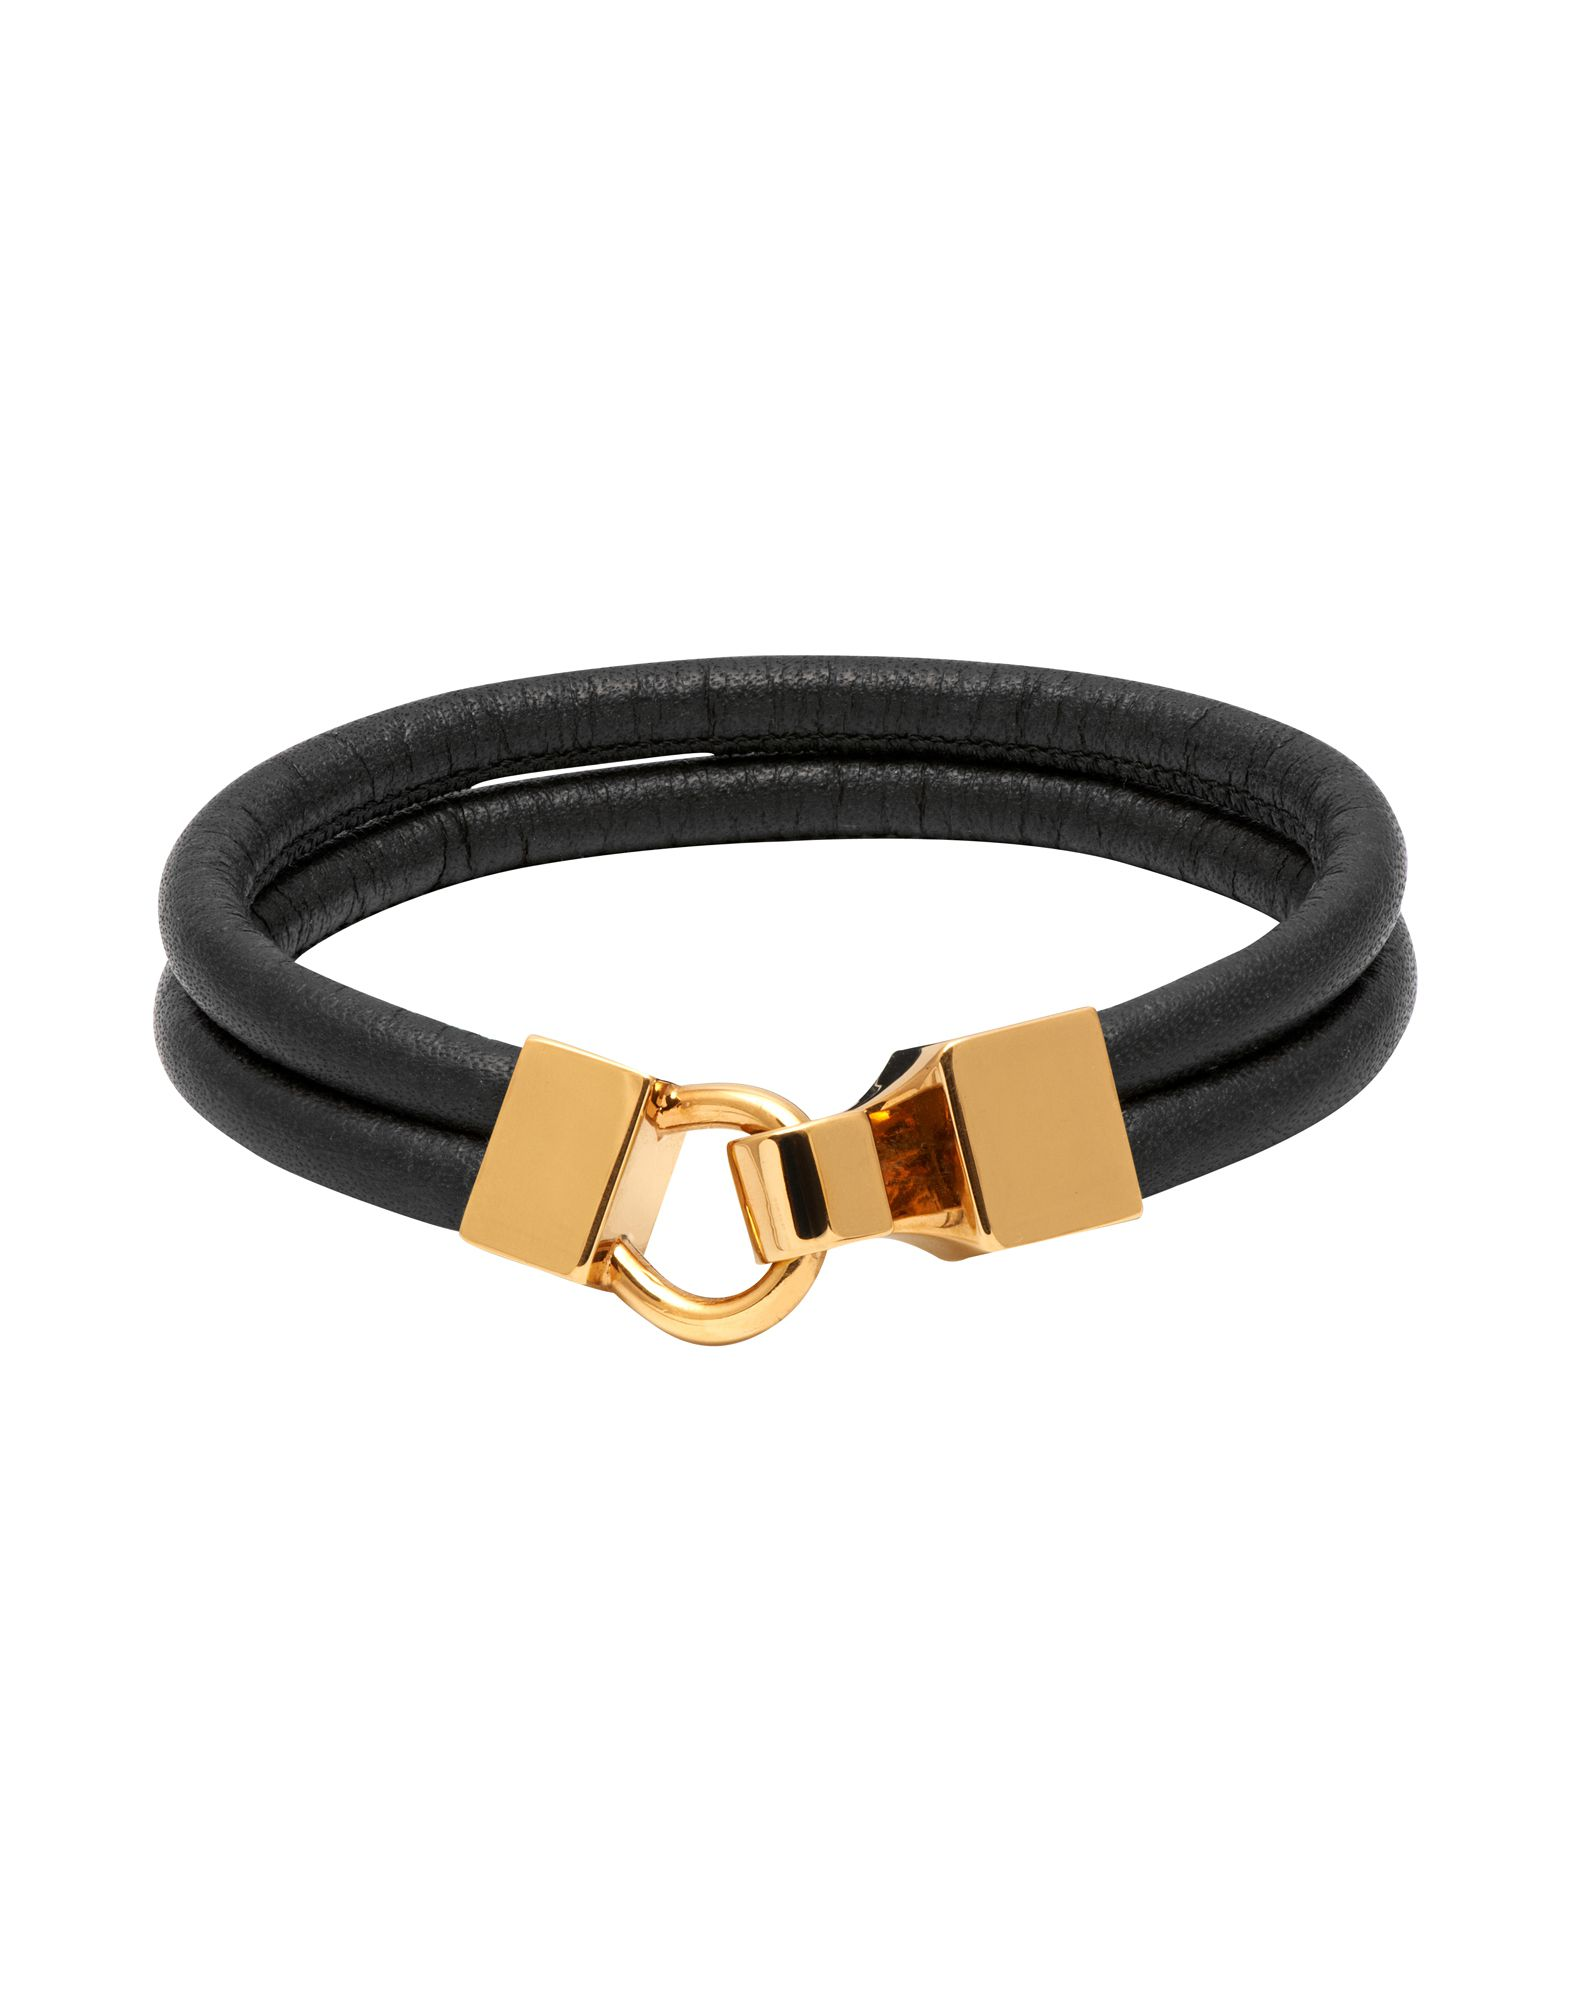 Bracciale Northskull London Duo Leather Bracelet - Uomo - Acquista online su